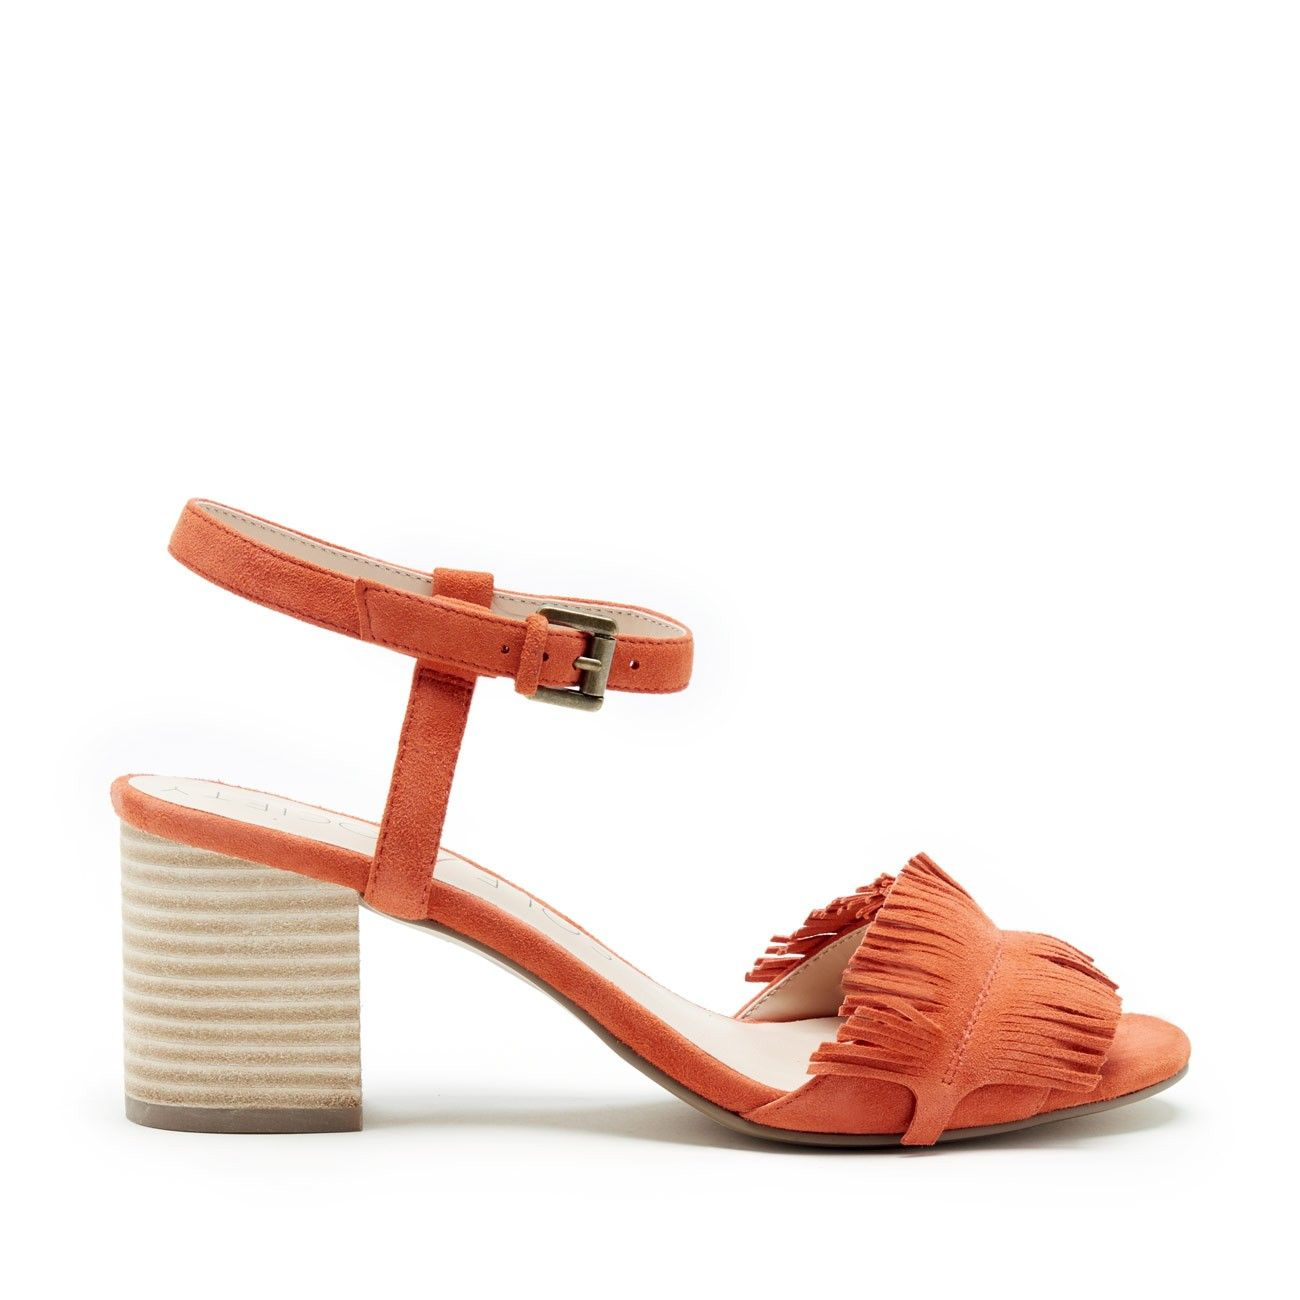 a0b644cba969 Sepia Fringe Ankle Strap Sandal - Creamsicle-5 Discount Womens Shoes